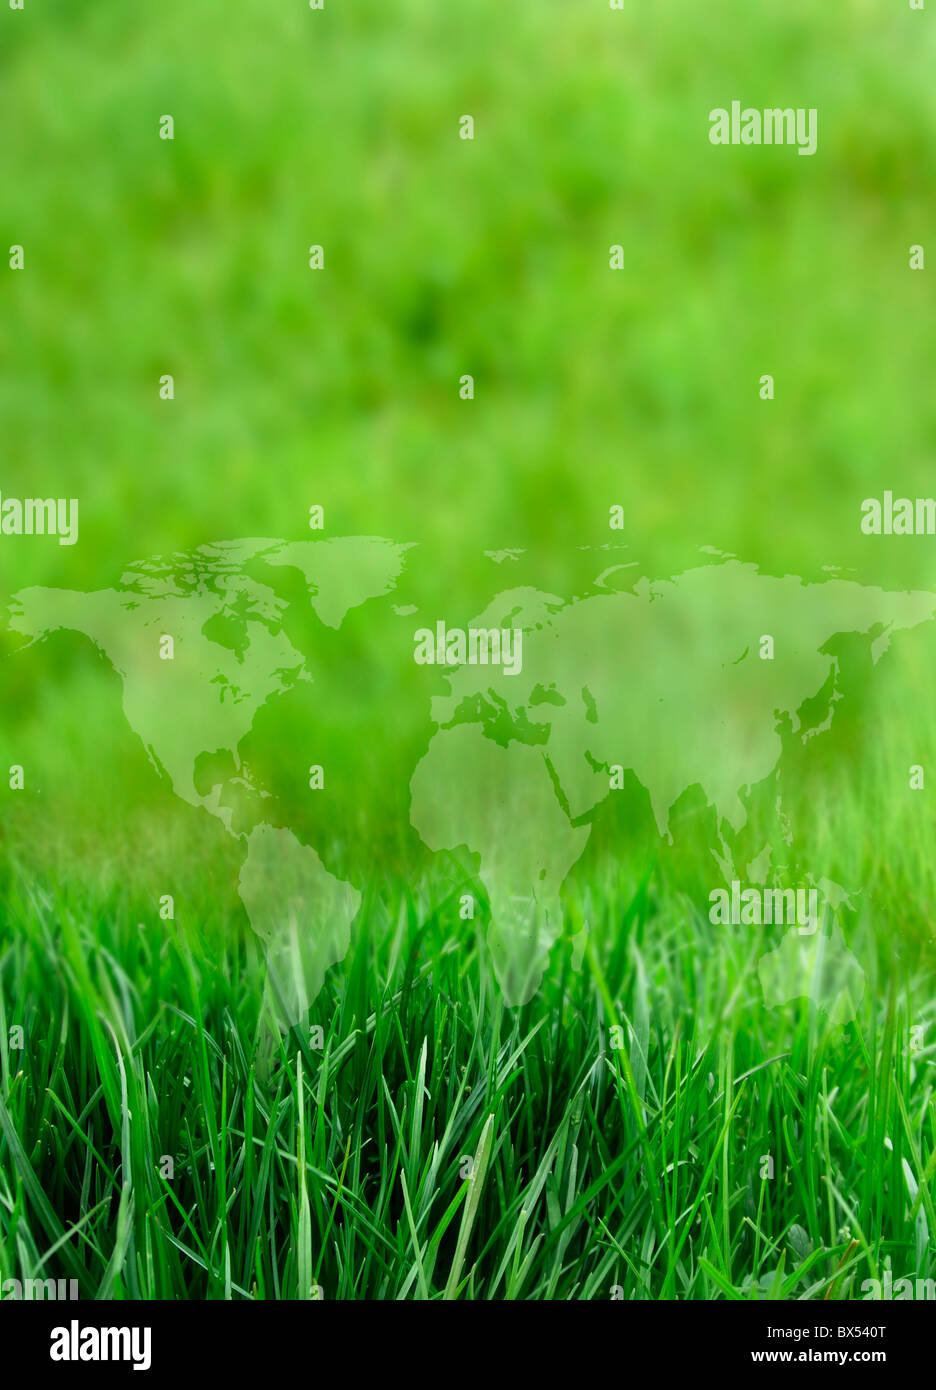 Green planet, conceptual artwork - Stock Image